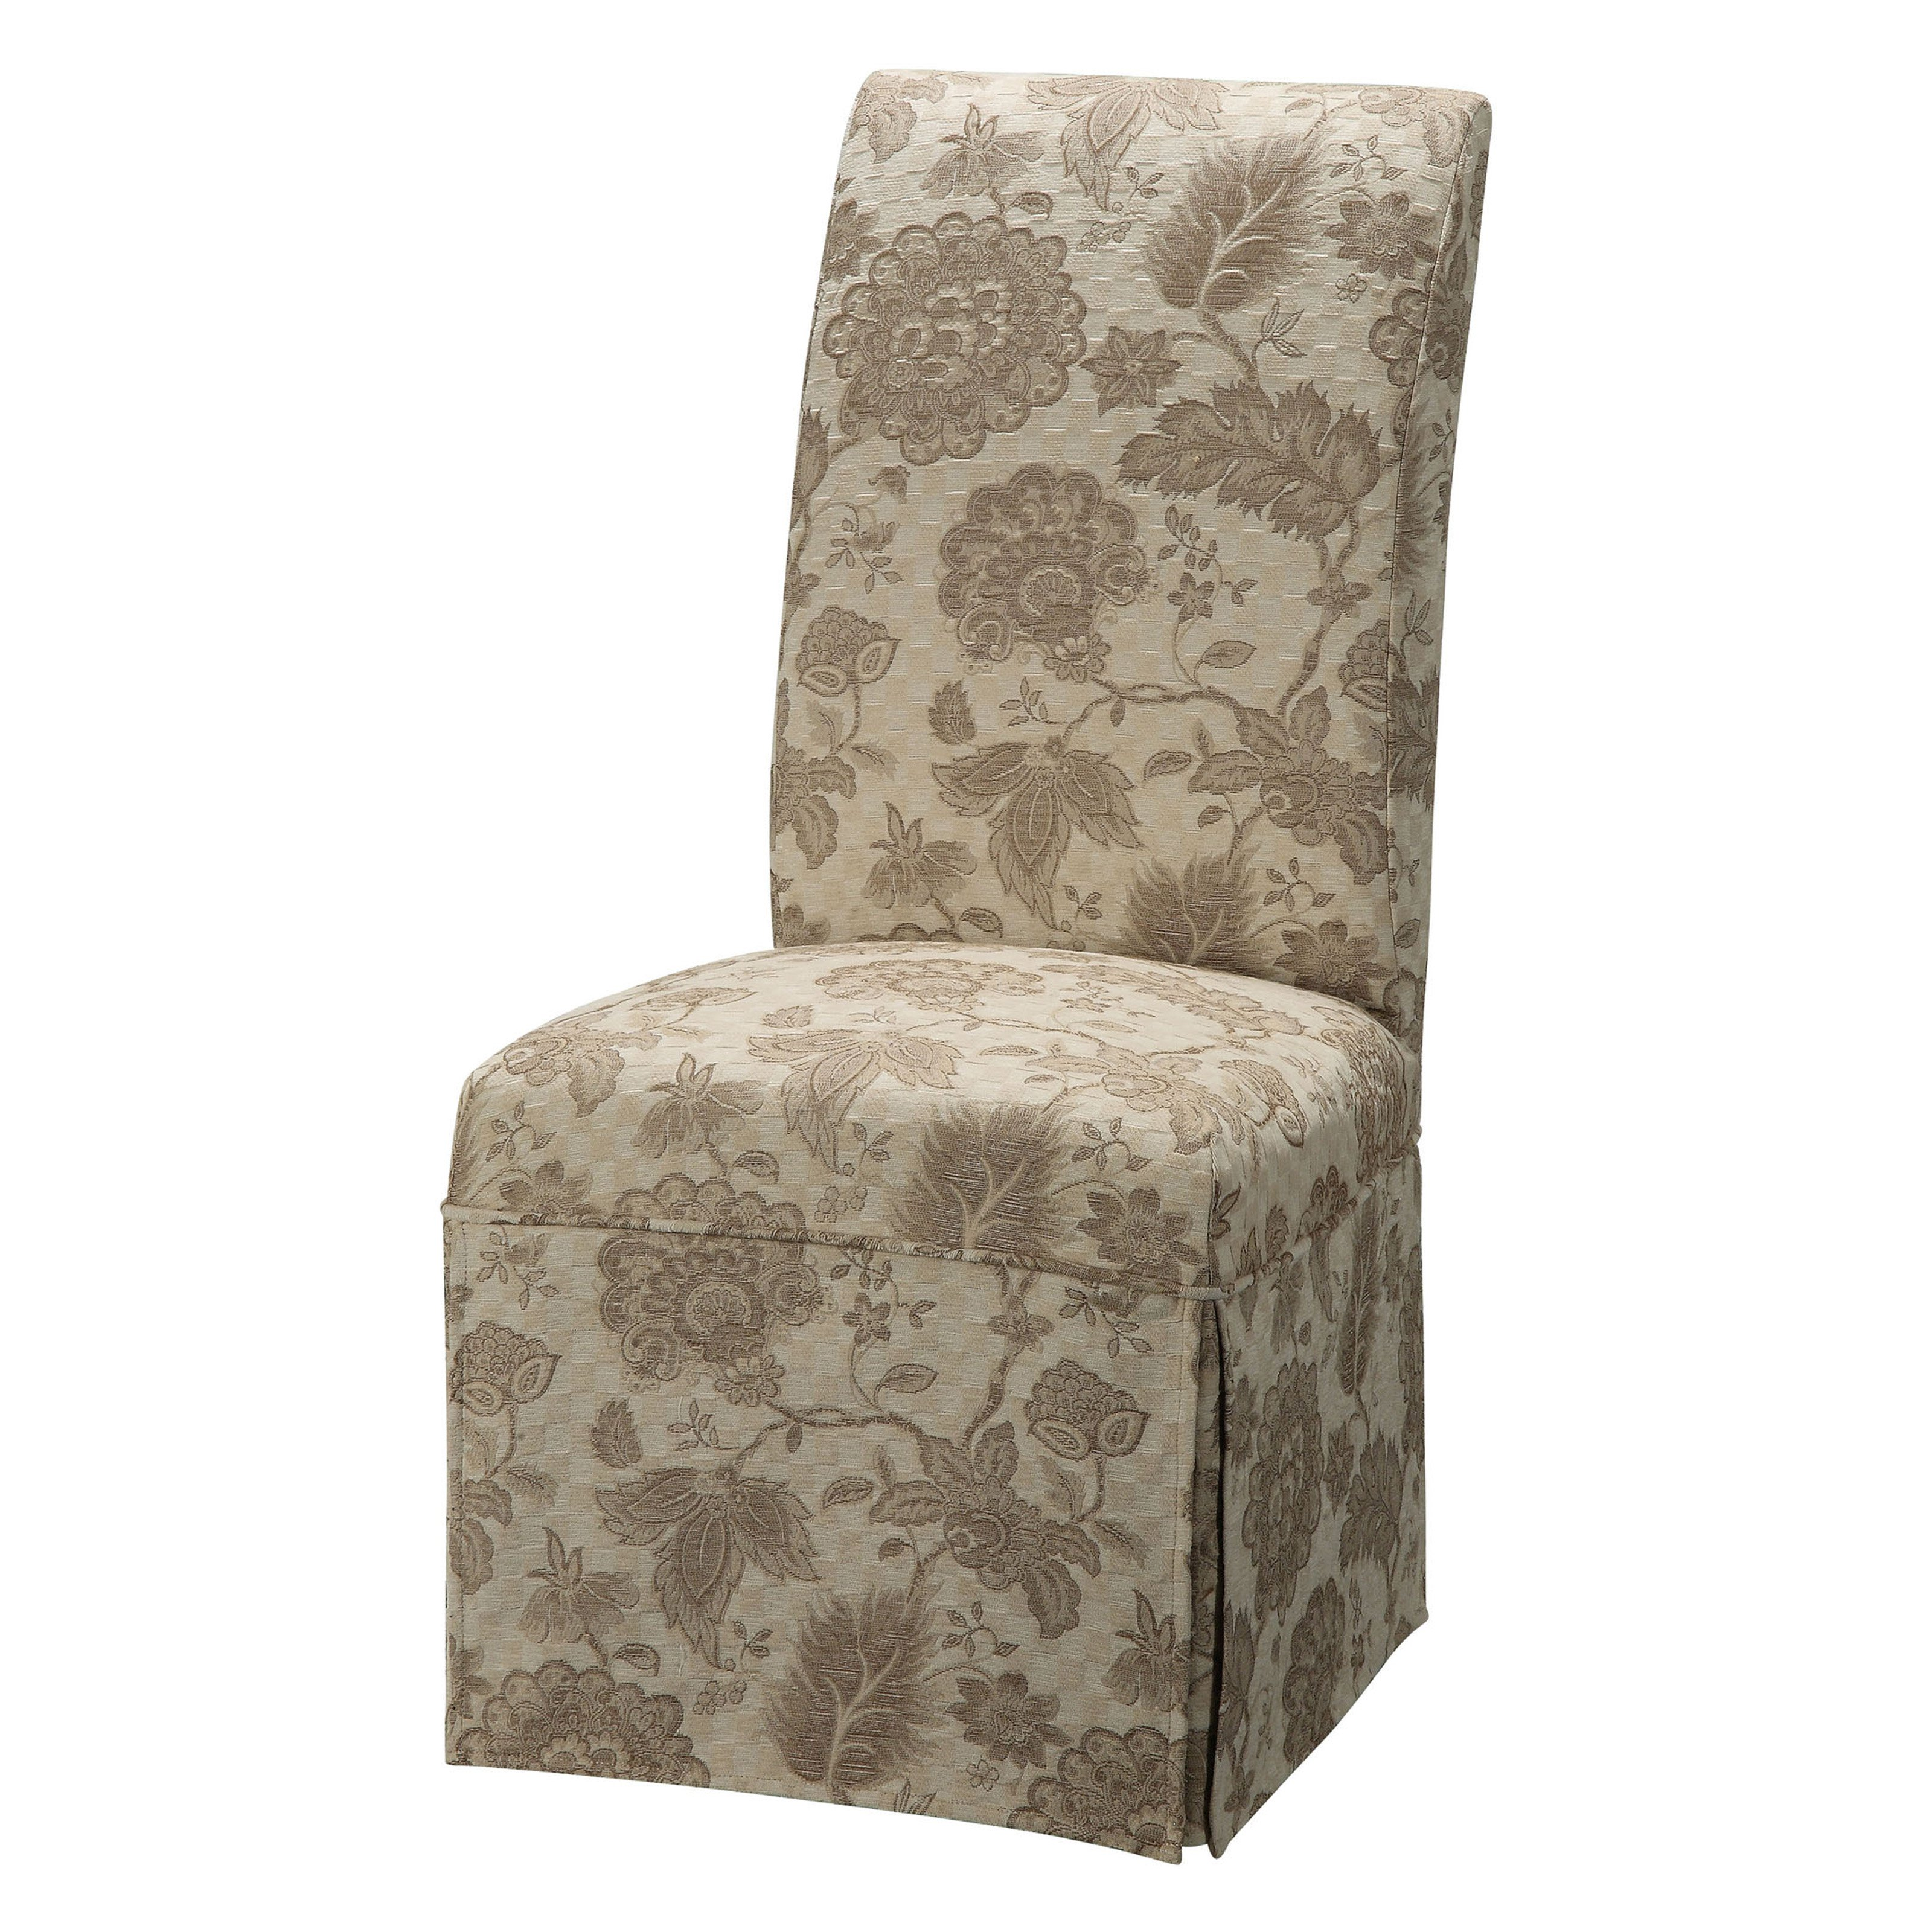 Dining Room Chair Patterns Dining Room Chair Covers Pattern Large And Beautiful